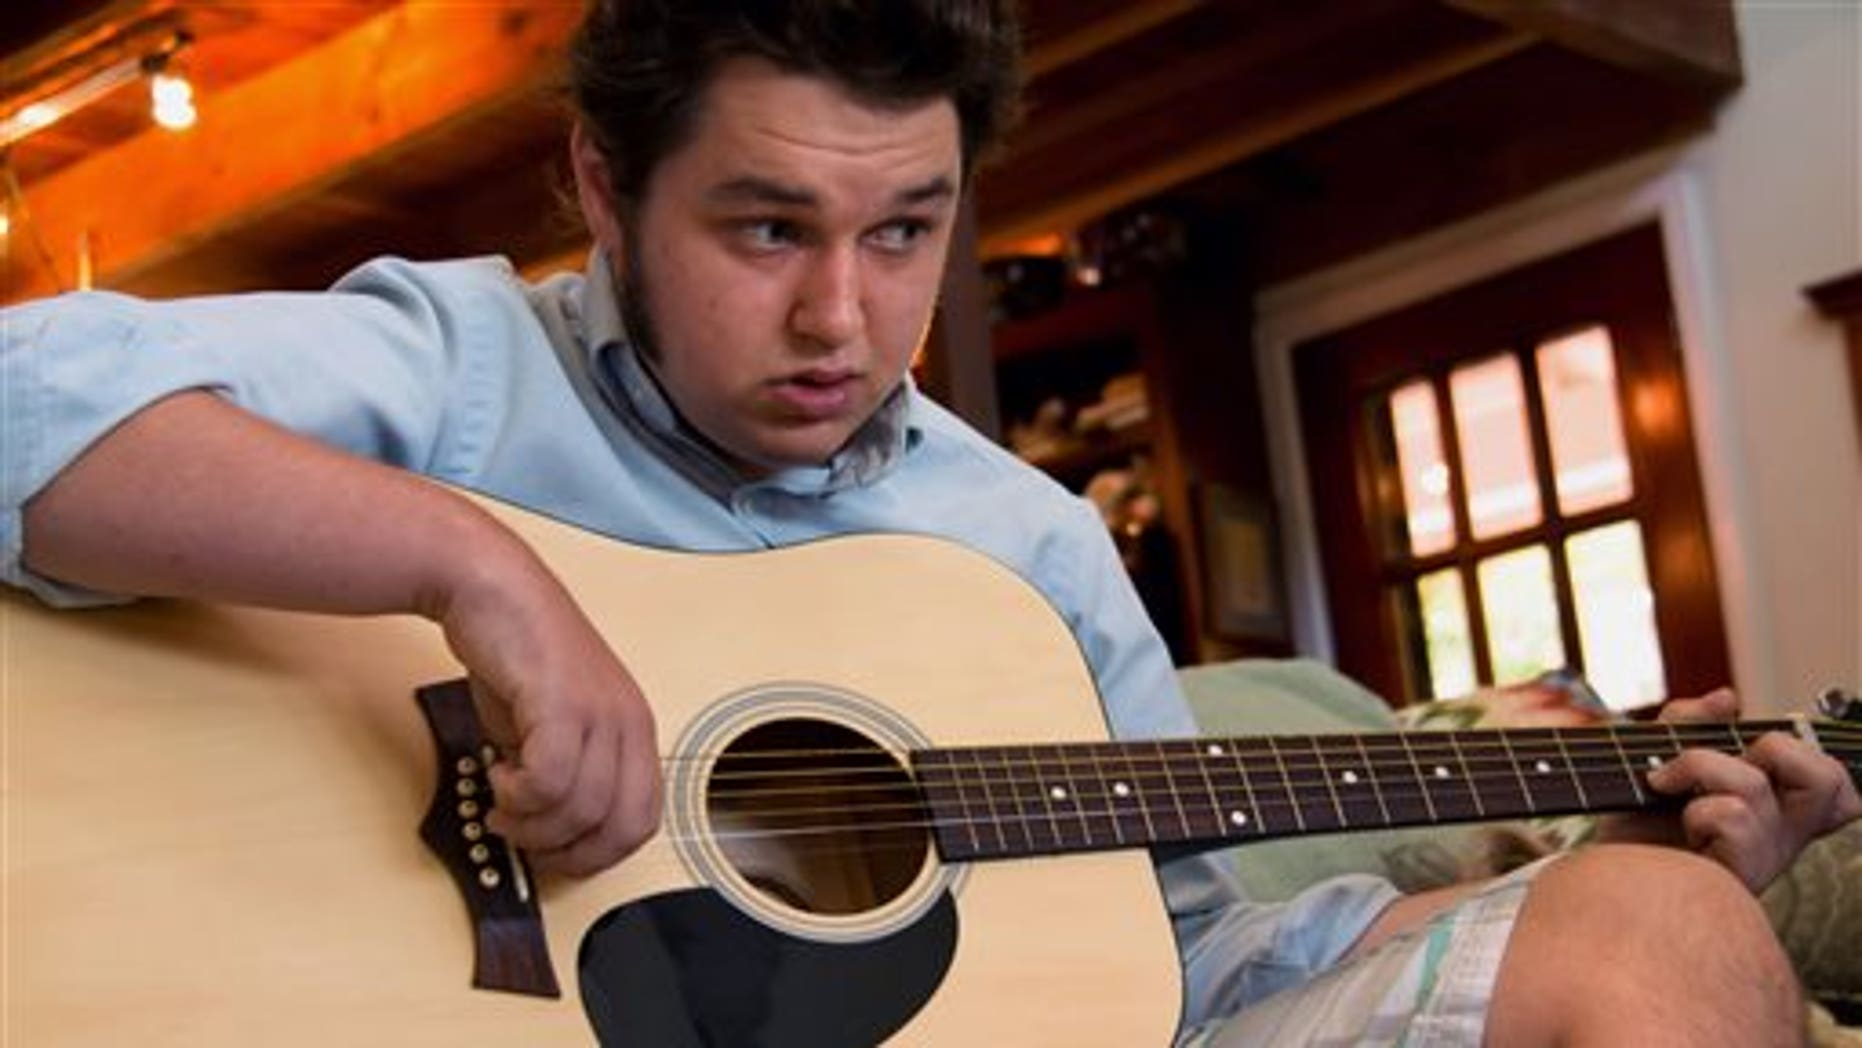 Oct. 24, 2014: In this photo, Jeffrey McCord, who suffered from violent and unexplained seizures as a baby, demonstrates his guitar at home in St. John, Virgin Islands. (AP)